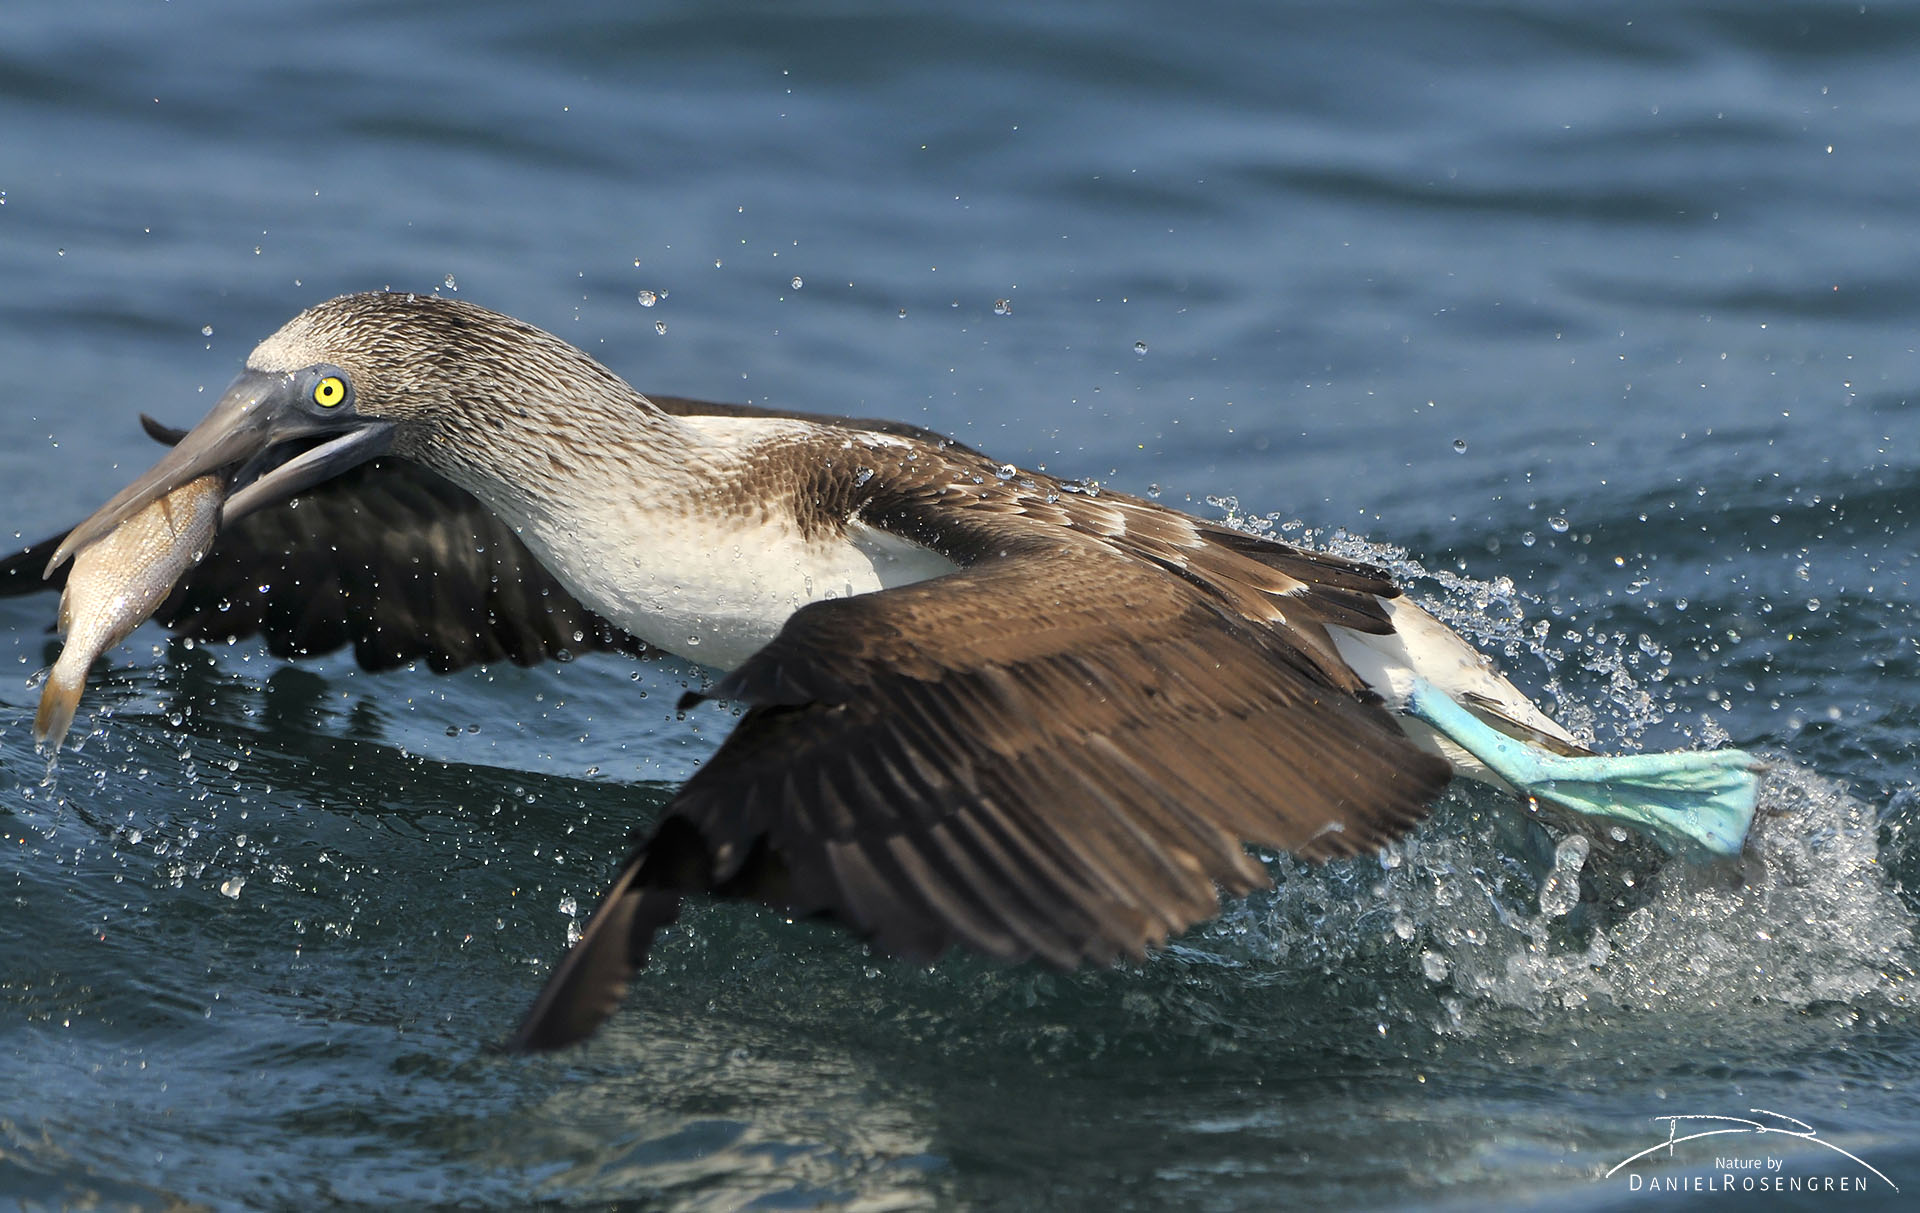 A Blue-footed booby taking off with a fish. © Daniel Rosengren